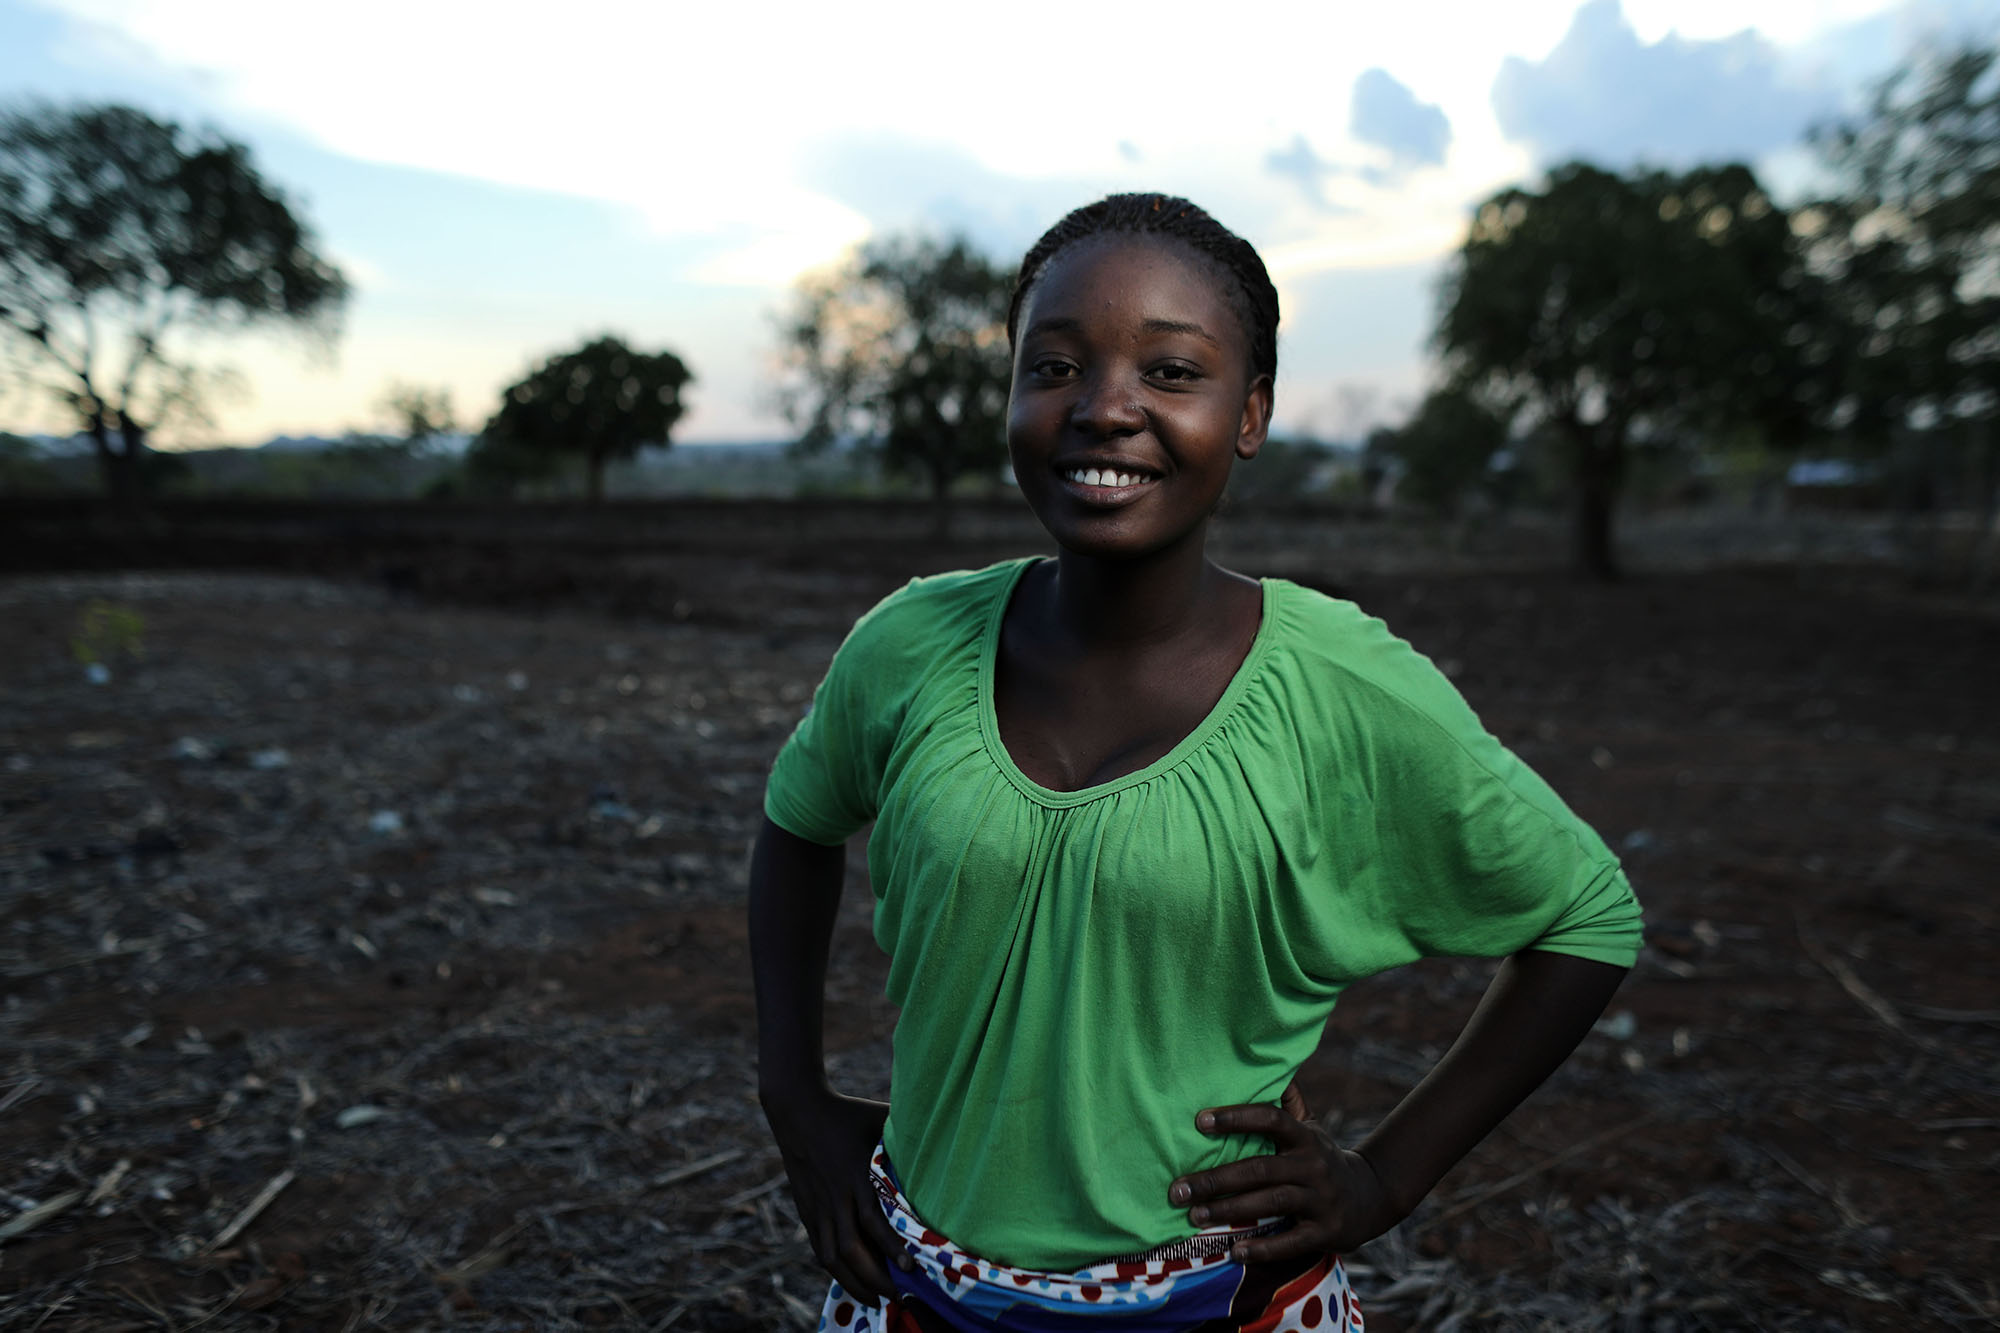 """NSANAMA, MACHINGA DISTRICT, MALAWI: Nov. 14, 2017 - The Determined, Resilient, Empowered, AIDS-free, Mentored and Safe (DREAMS) initiative is an ambitious $385 million partnership to reduce HIV infection among adolescent girls and young women (AGYW) in HIV priority areas within 10 sub-Saharan African countries that account for nearly half of the new HIV infections that occur among AGYW globally in 2014. While the main goal of the DREAMS initiative is to keep AGYW AIDS-free, the benefits of core package go well beyond the disease. DREAMS upon the USAID decades of experience empowering young women and advancing gender equality across sectors of global health, education, and economic growth, USAID partners with community, faith-based, and non-governmental organizations whose credibility within communities and capacity to mobilize significant numbers of volunteers allow USAID to address the structural inequalities impacting girls vulnerability across multiple areas. Maggie Medison, 18, who lives in Malawi, dropped out of school in 2015 because she became pregnant. In 2015, Maggie was recruited into One Community's Go Girls! Club. She later applied to be a Community Resource Person (CRP) to supervise the club. She has now become an active peer educator, a choice that has changed the course of her life. Maggie works with girls in her community to raise awareness about the importance of remaining in school and protecting ones self against HIV.""""After I fell pregnant and had my baby I thought that was the end of me. I didn't think I could do anything else in my life. But after joining the DREAMS program, I went back to school. And now I know that I can achieve whatever I want in my life."""" Maggie has both a bright outlook on her future and a realistic approach to life. She says, """"I want to be a role model for my daughter to follow."""" Photo by Josh Estey."""